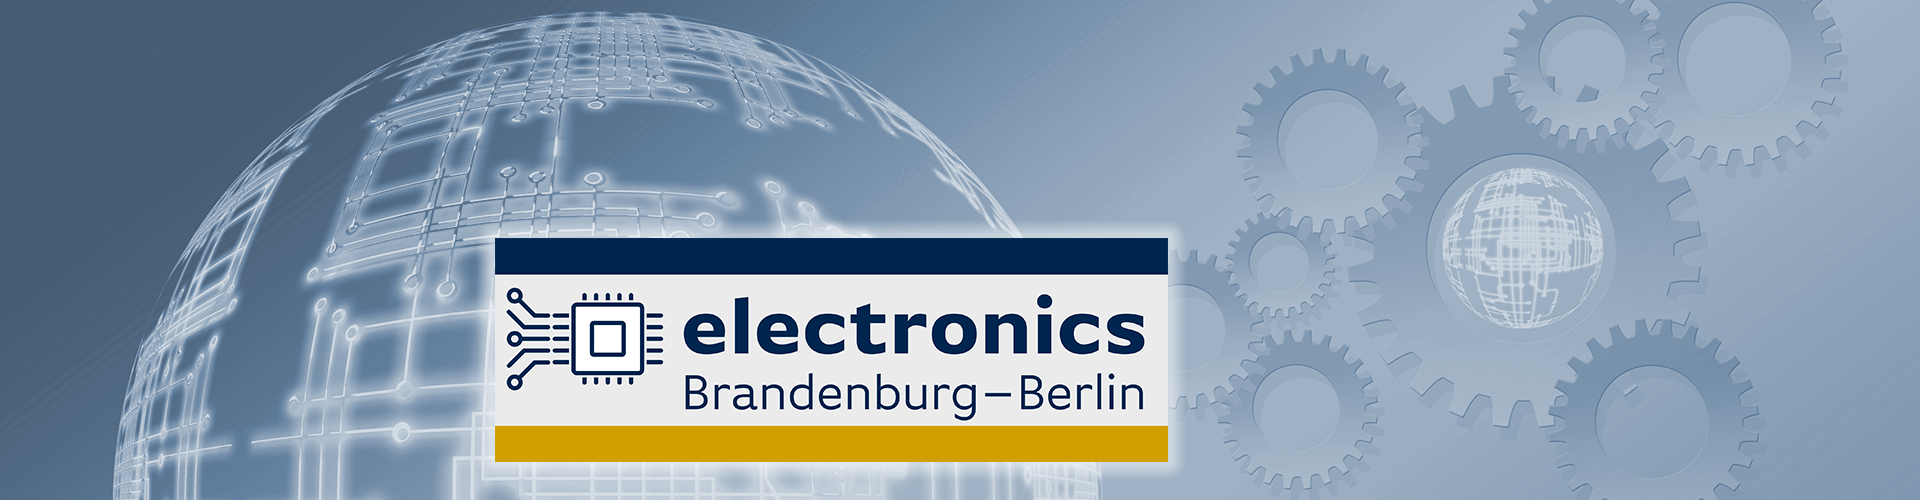 Electronics Brandenburg - Berlin